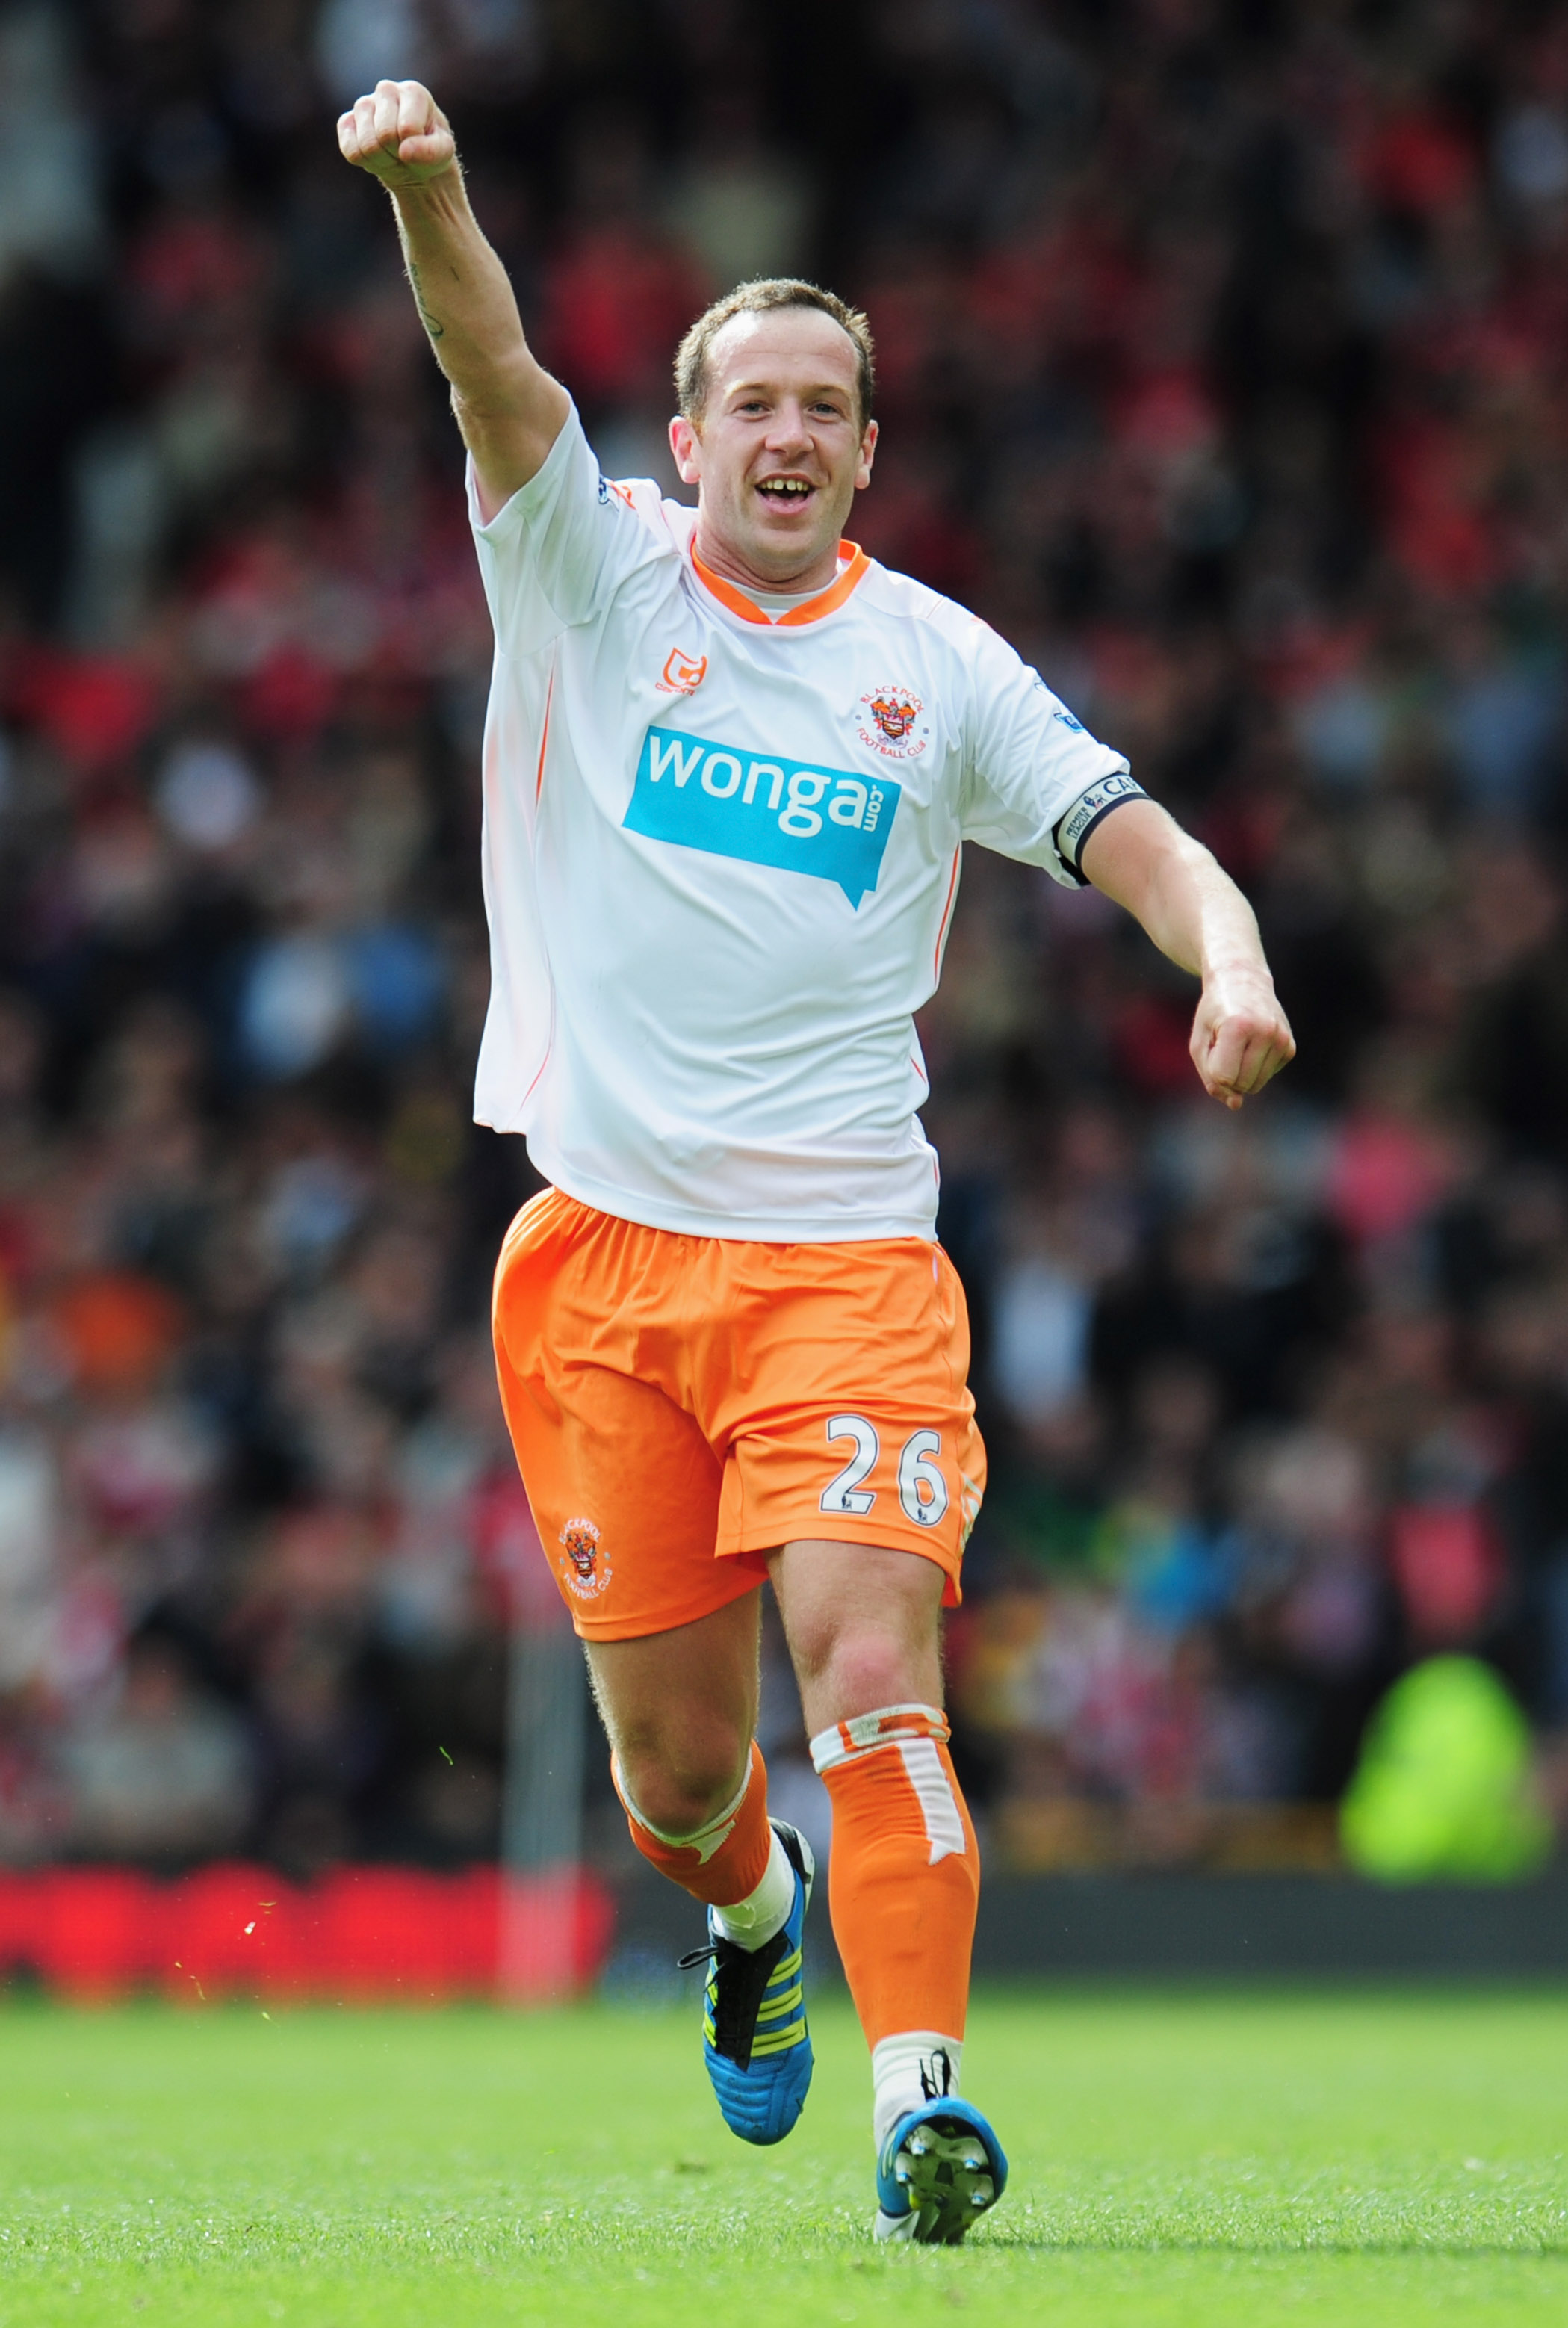 MANCHESTER, ENGLAND - MAY 22:  Charlie Adam of Blackpool celebrates as scores their first goal from a free kick during the Barclays Premier League match between Manchester United and Blackpool at Old Trafford on May 22, 2011 in Manchester, England.  (Phot